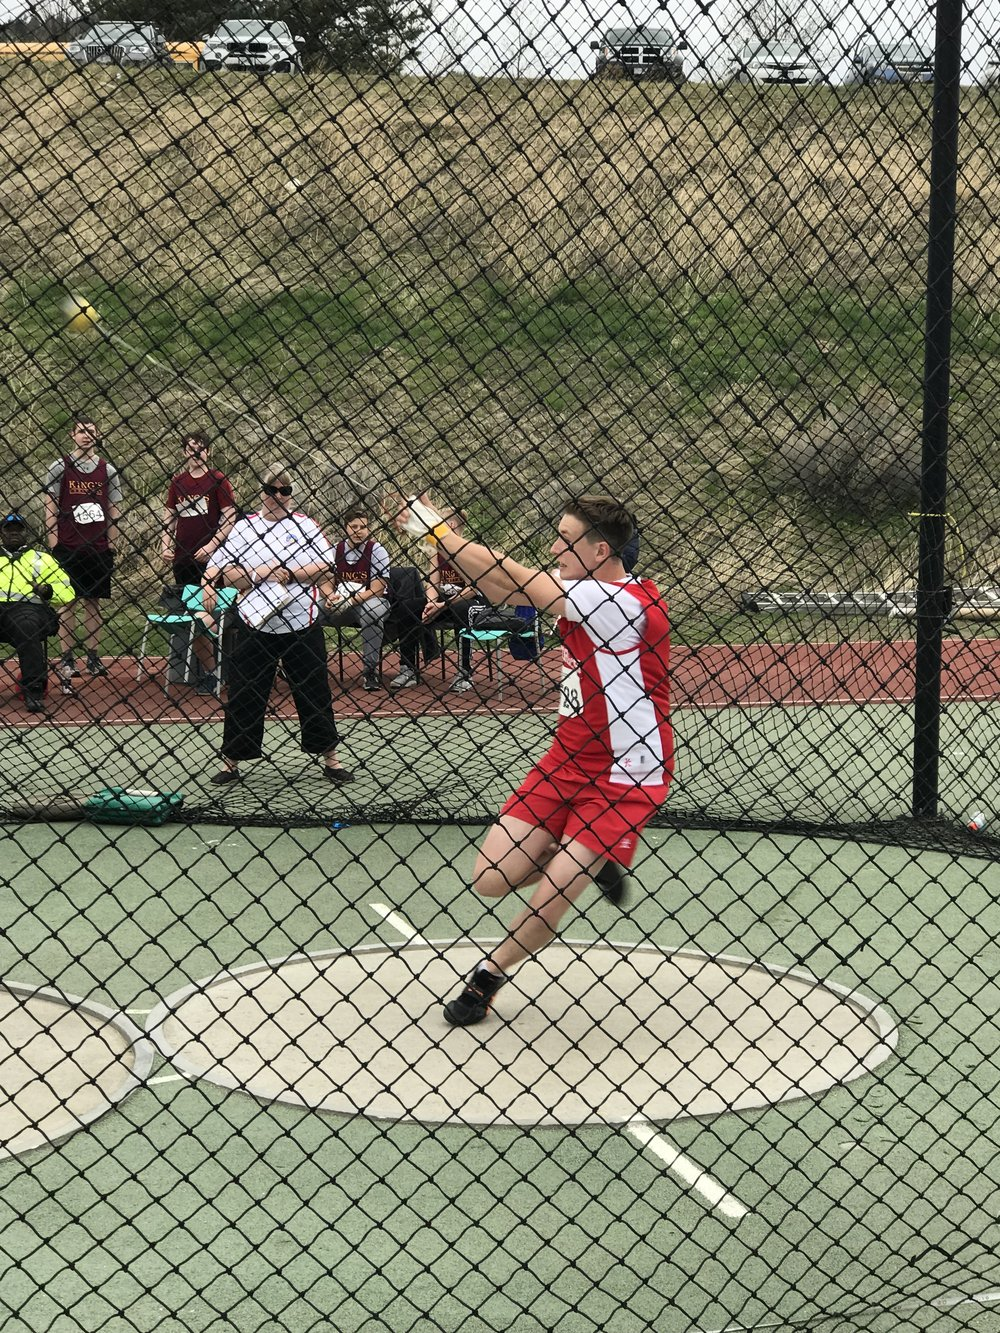 Thunderbird Athlete, Matthew Uliana competing for his school (Saint Georges) in the hammer throw at the Battle of the Border in Kamloops, BC.